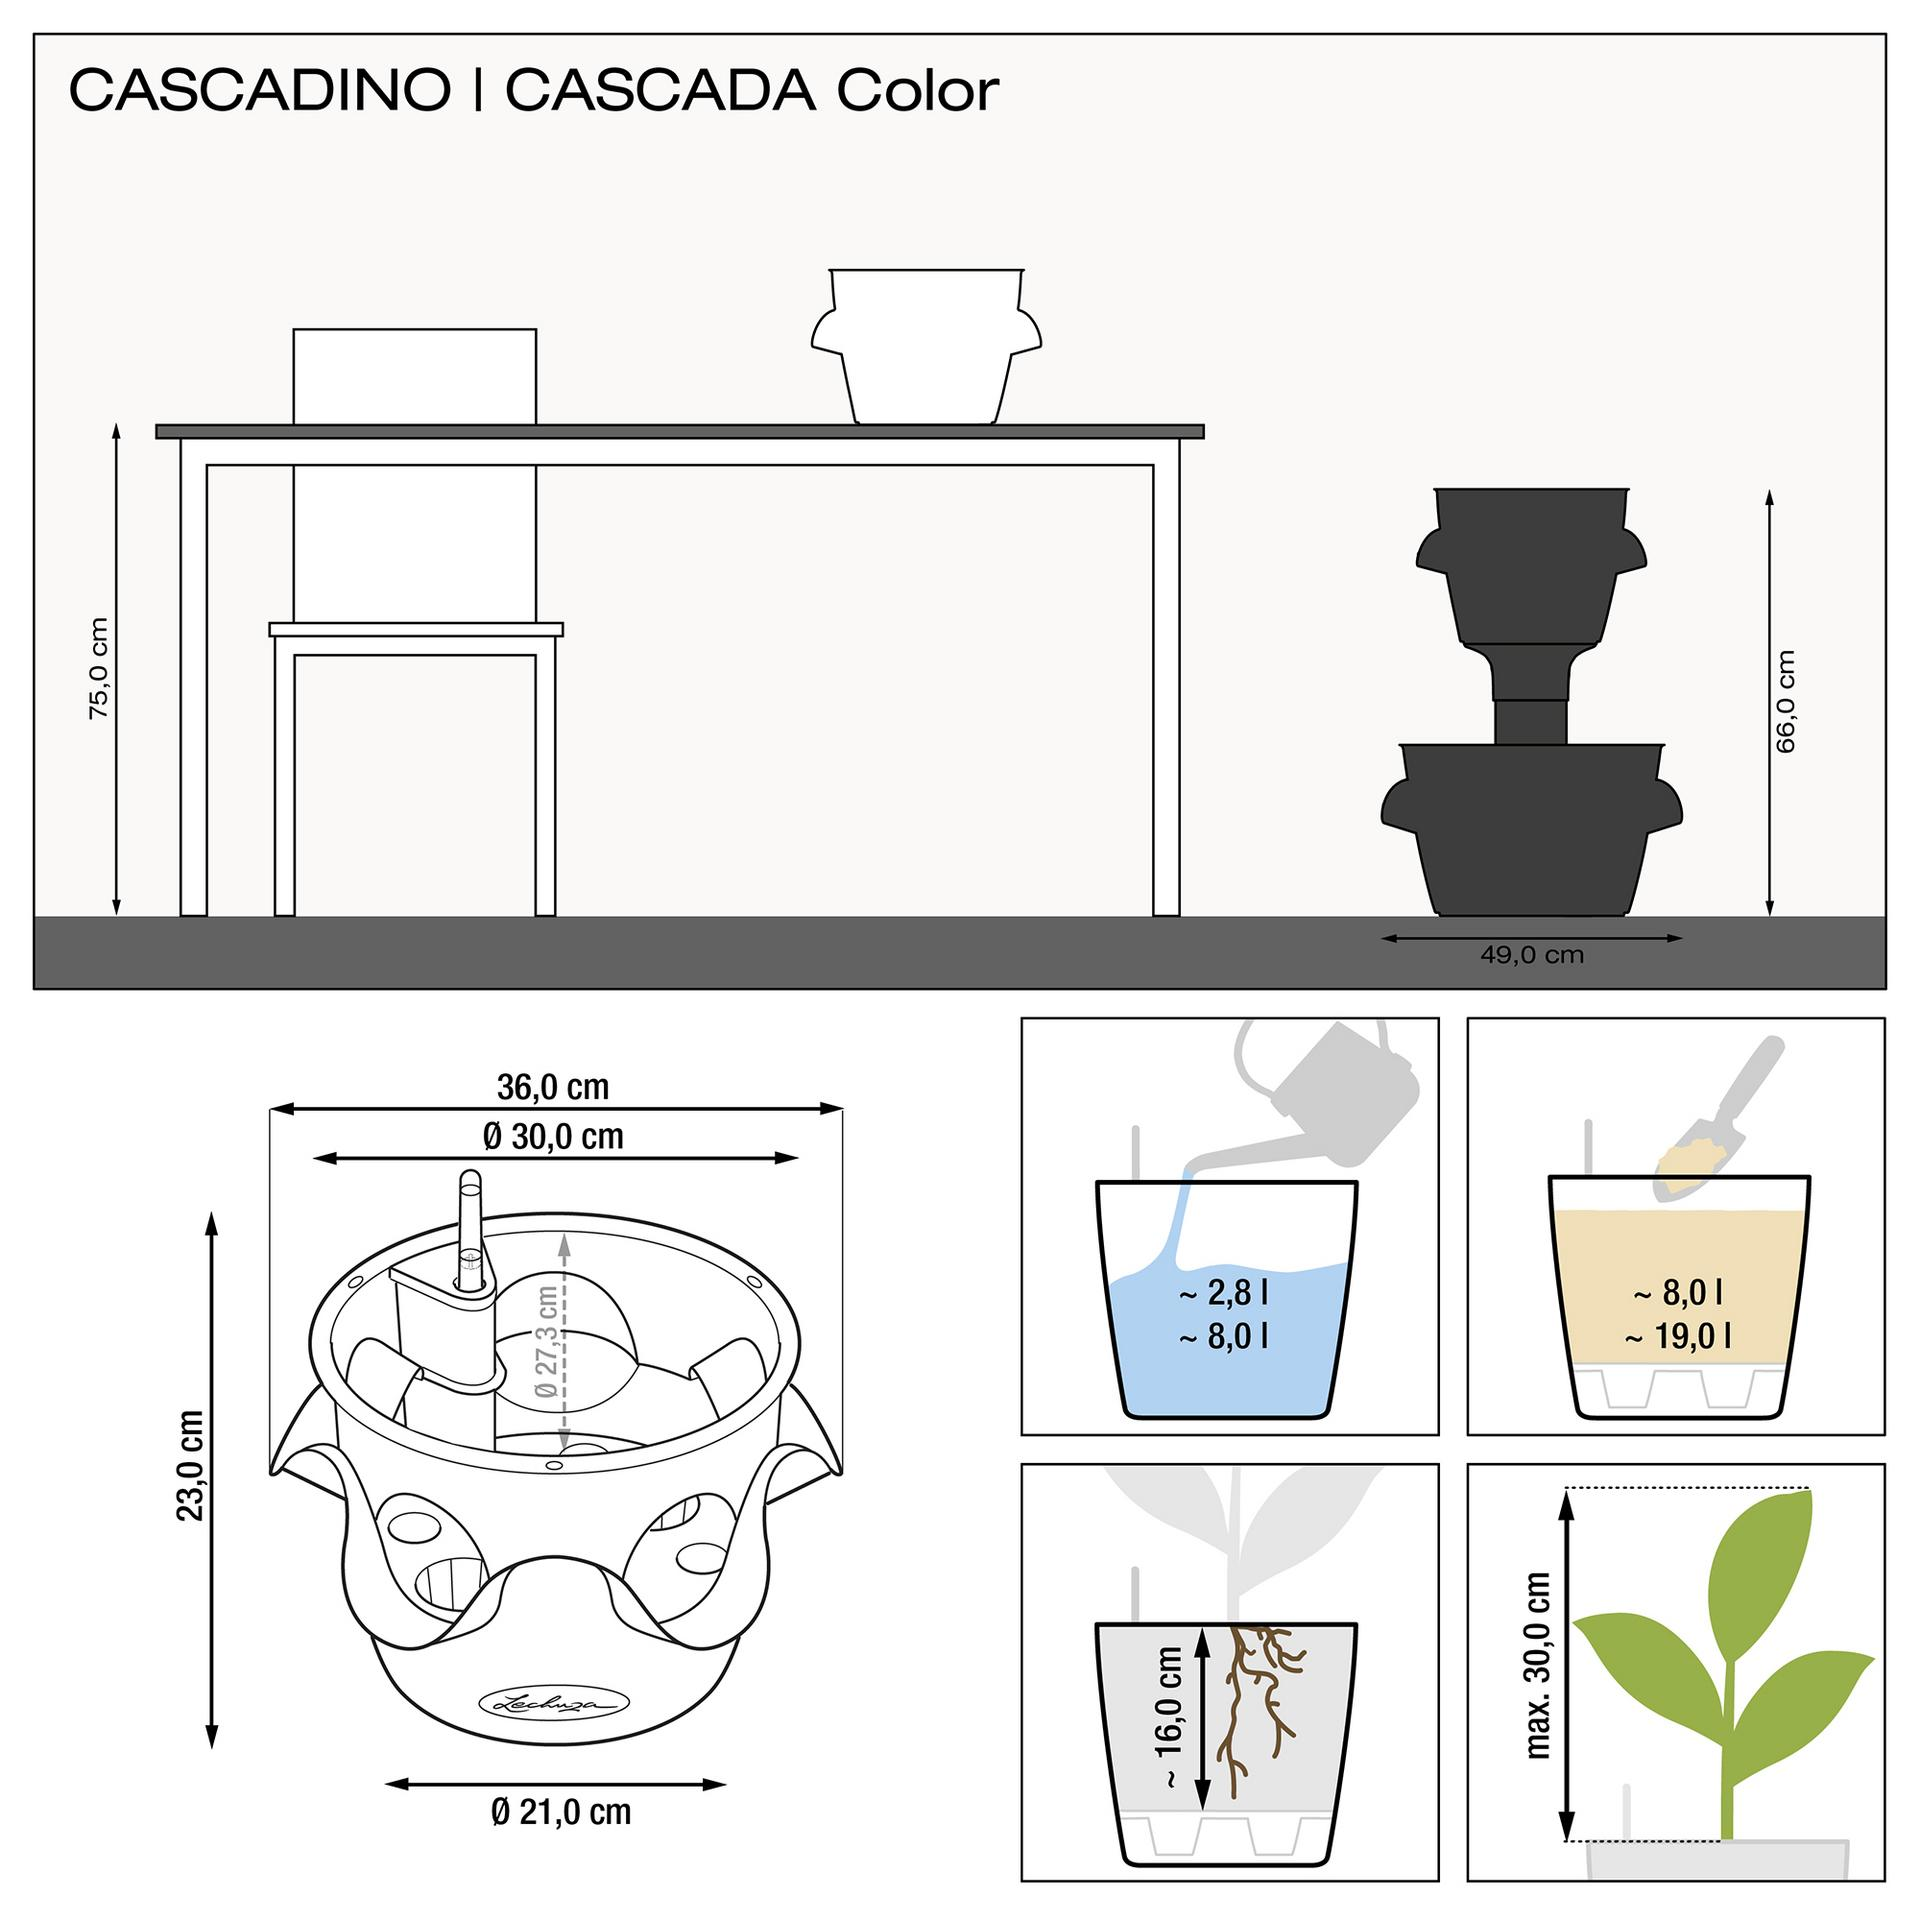 le_cascadino-color36-2_product_addi_nz